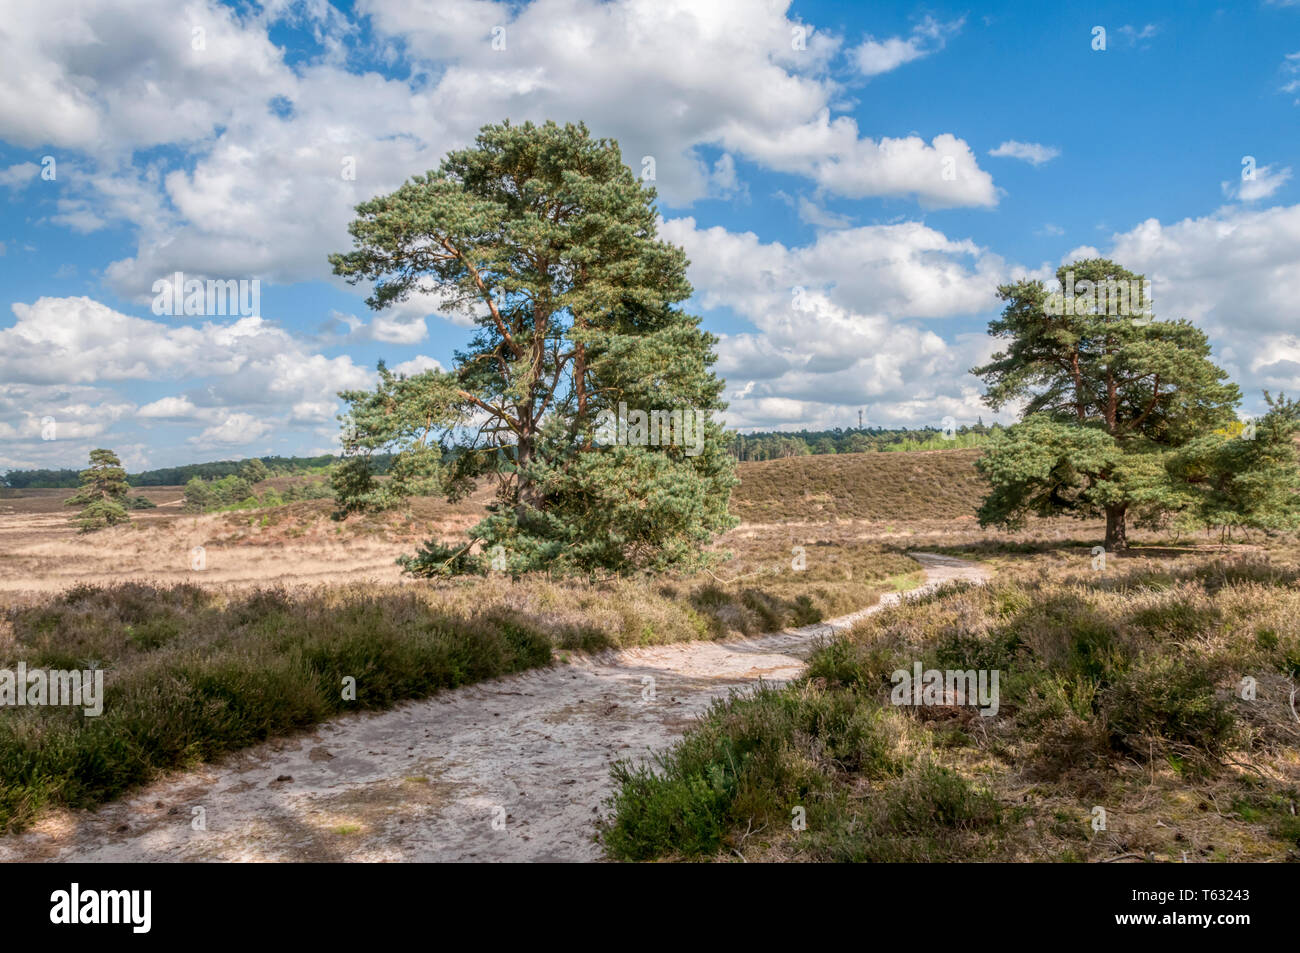 Scots pines, Pinus sylvestris, in Dersingham Bog, Norfolk.  It is the largest remaining example of acid valley mire habitat in East Anglia. - Stock Image